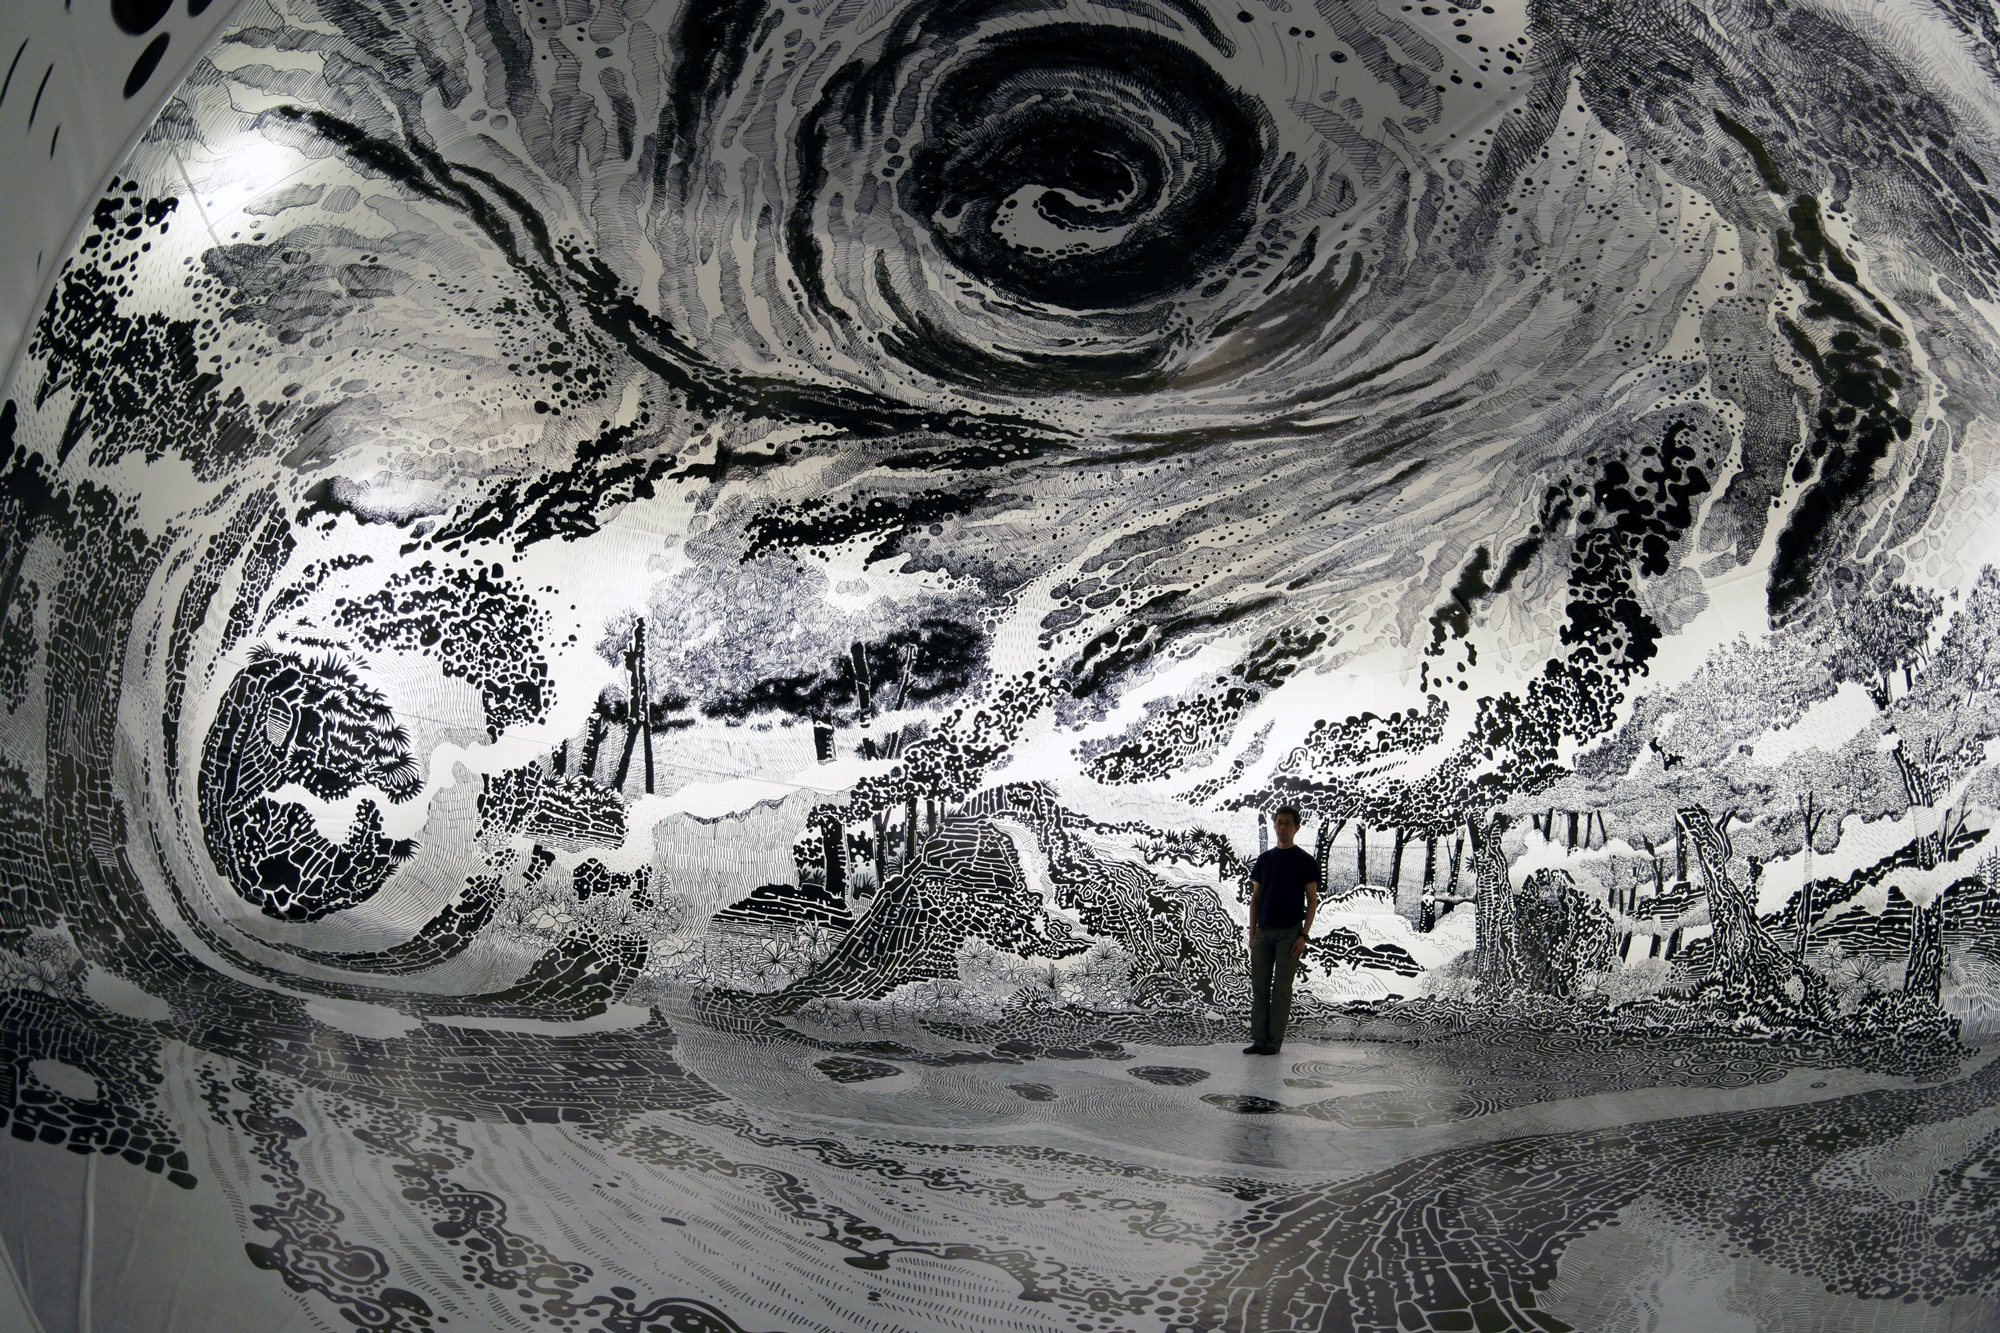 New 360 Degree Immersive Drawing Created With 120 Marker Pens by     For his latest immersive installation  Oscar Oiwa  previously  created a  360 degree black and white drawing that fills the space of an inflatable  vinyl